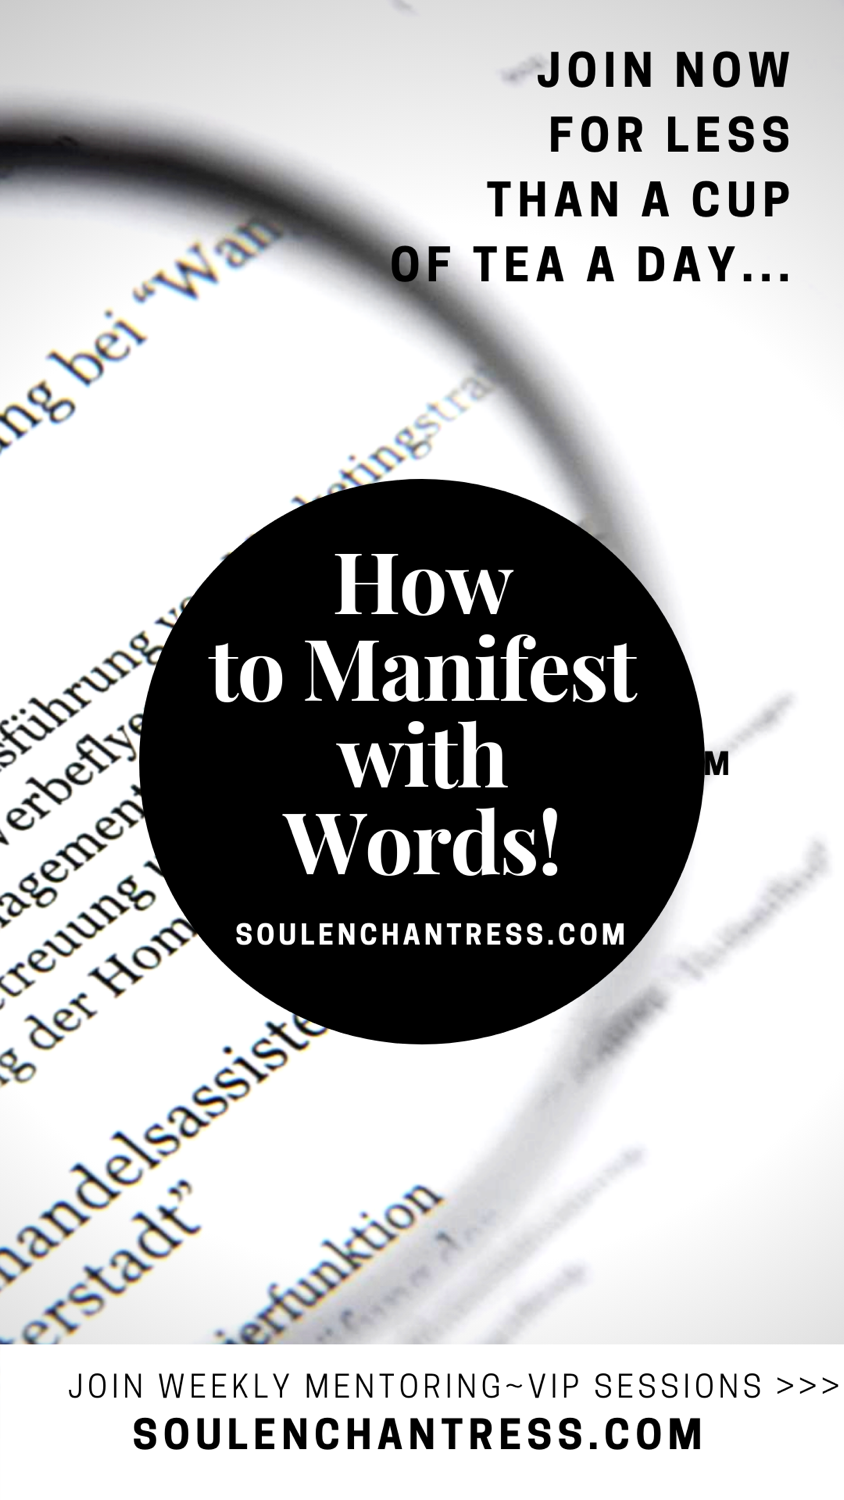 how to manifest with words, how to manifest with sound, manifestation mentor, soul enchantress